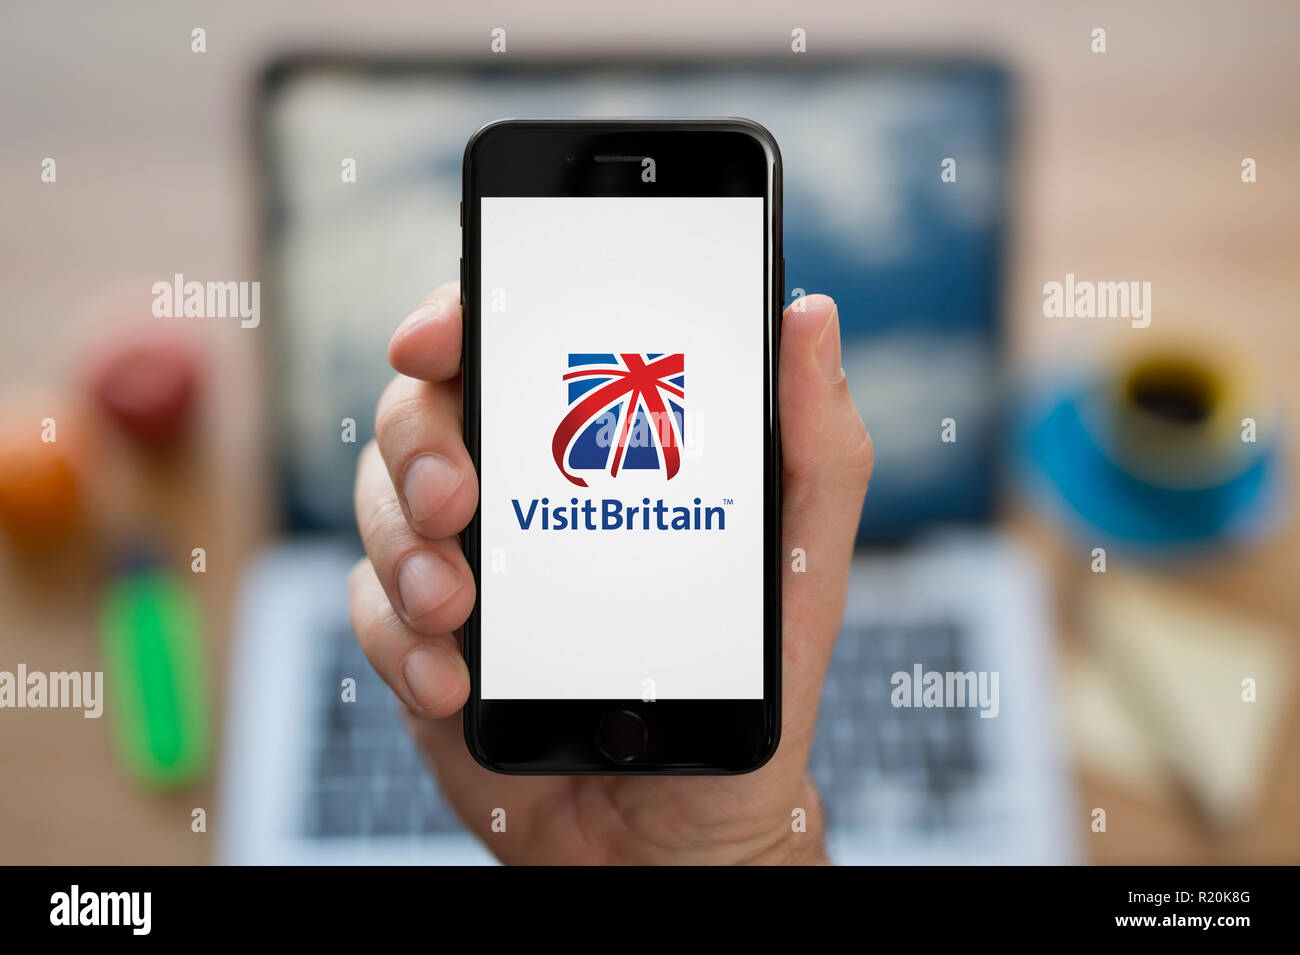 A man looks at his iPhone which displays the Visit Britain logo, while sat at his computer desk (Editorial use only). - Stock Image